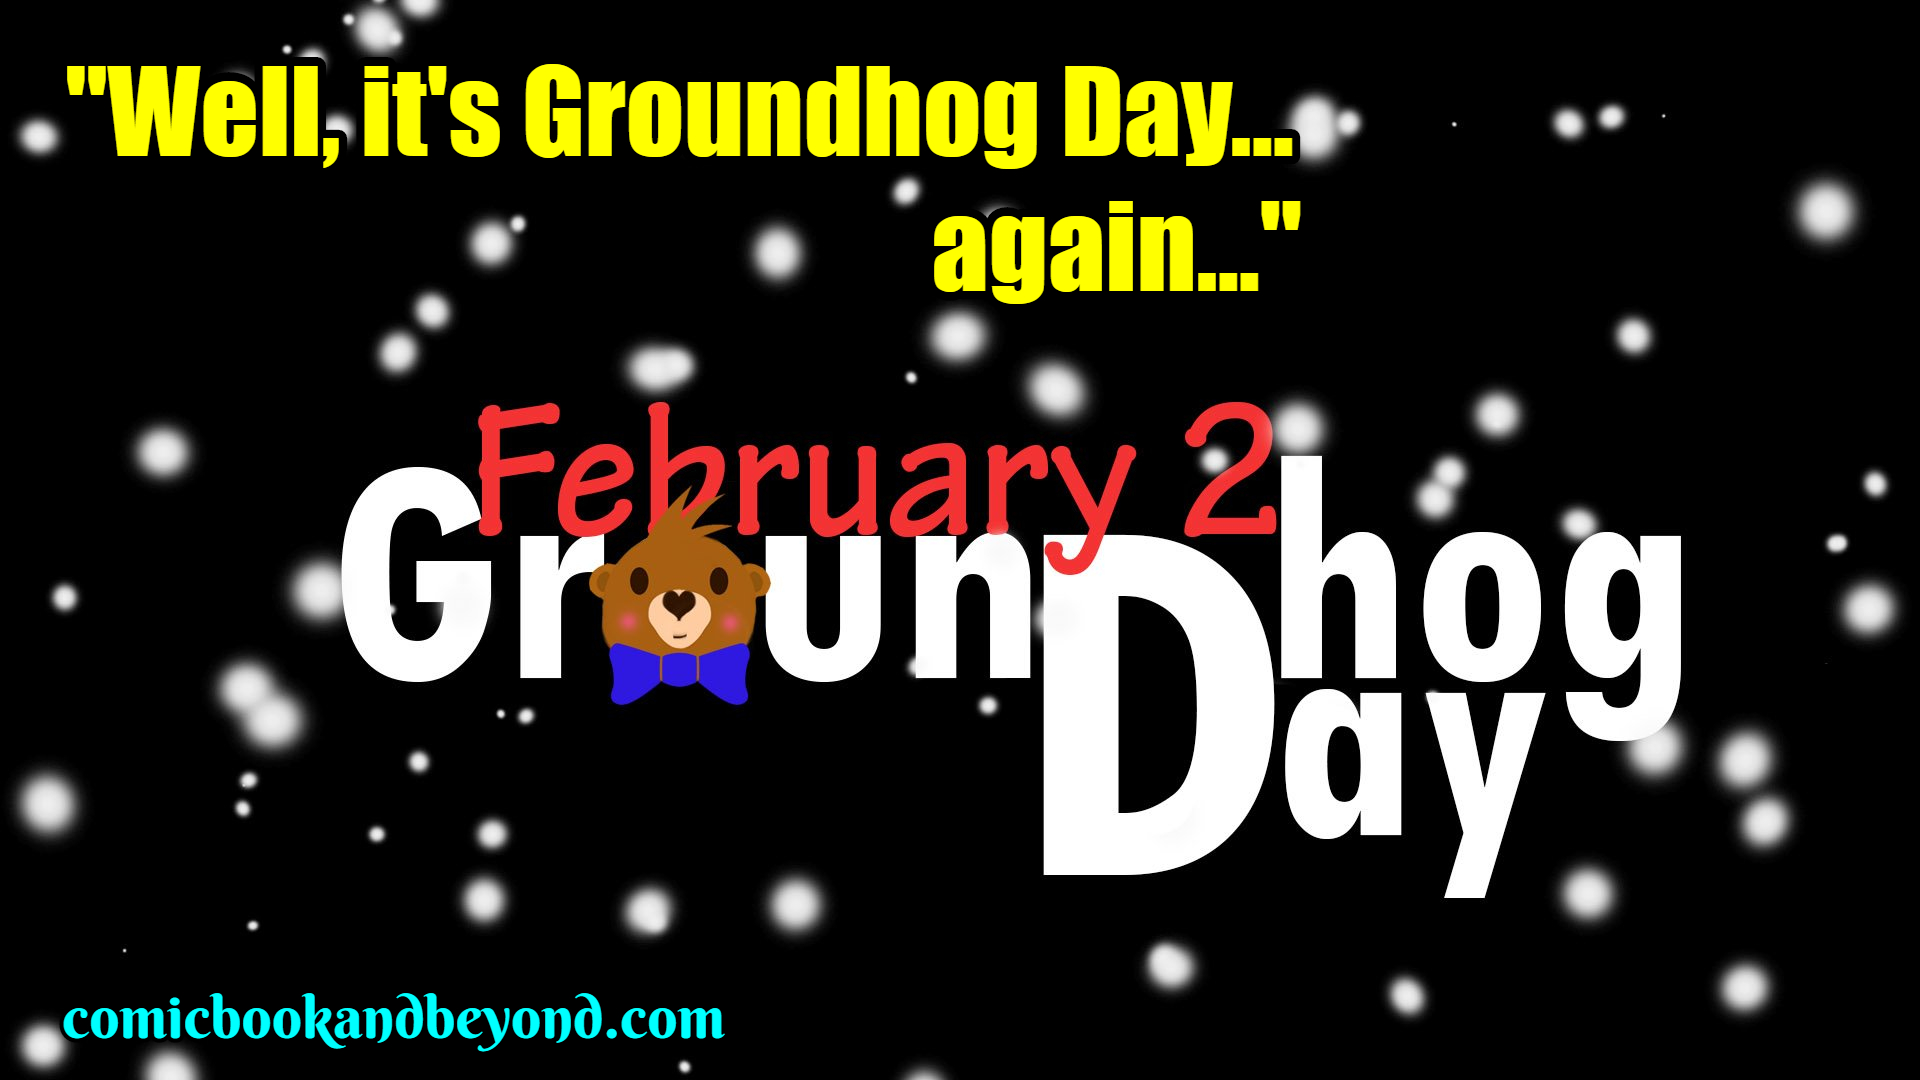 Groundhog Day quotes (5)